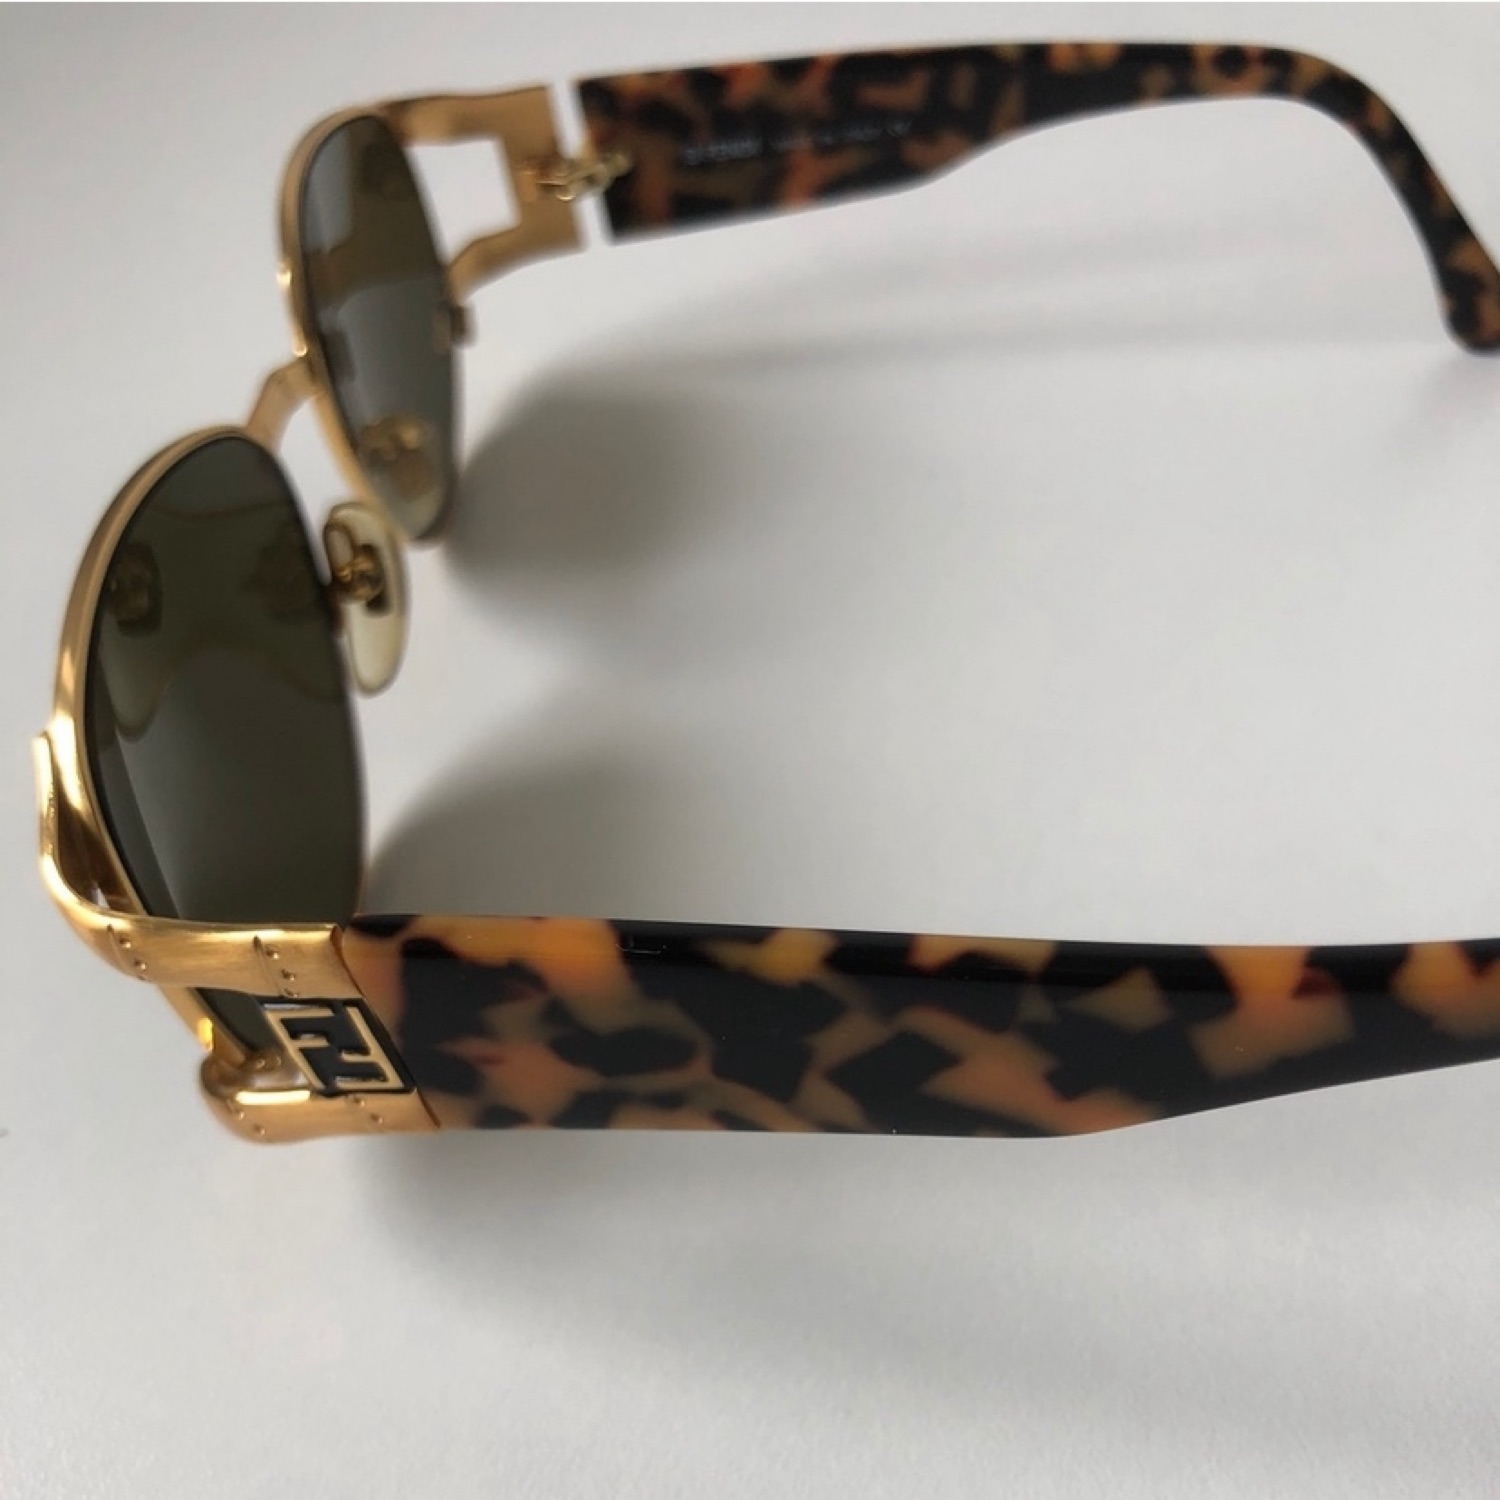 Fendi Vintage 7017 Gold Logo Sunglasses